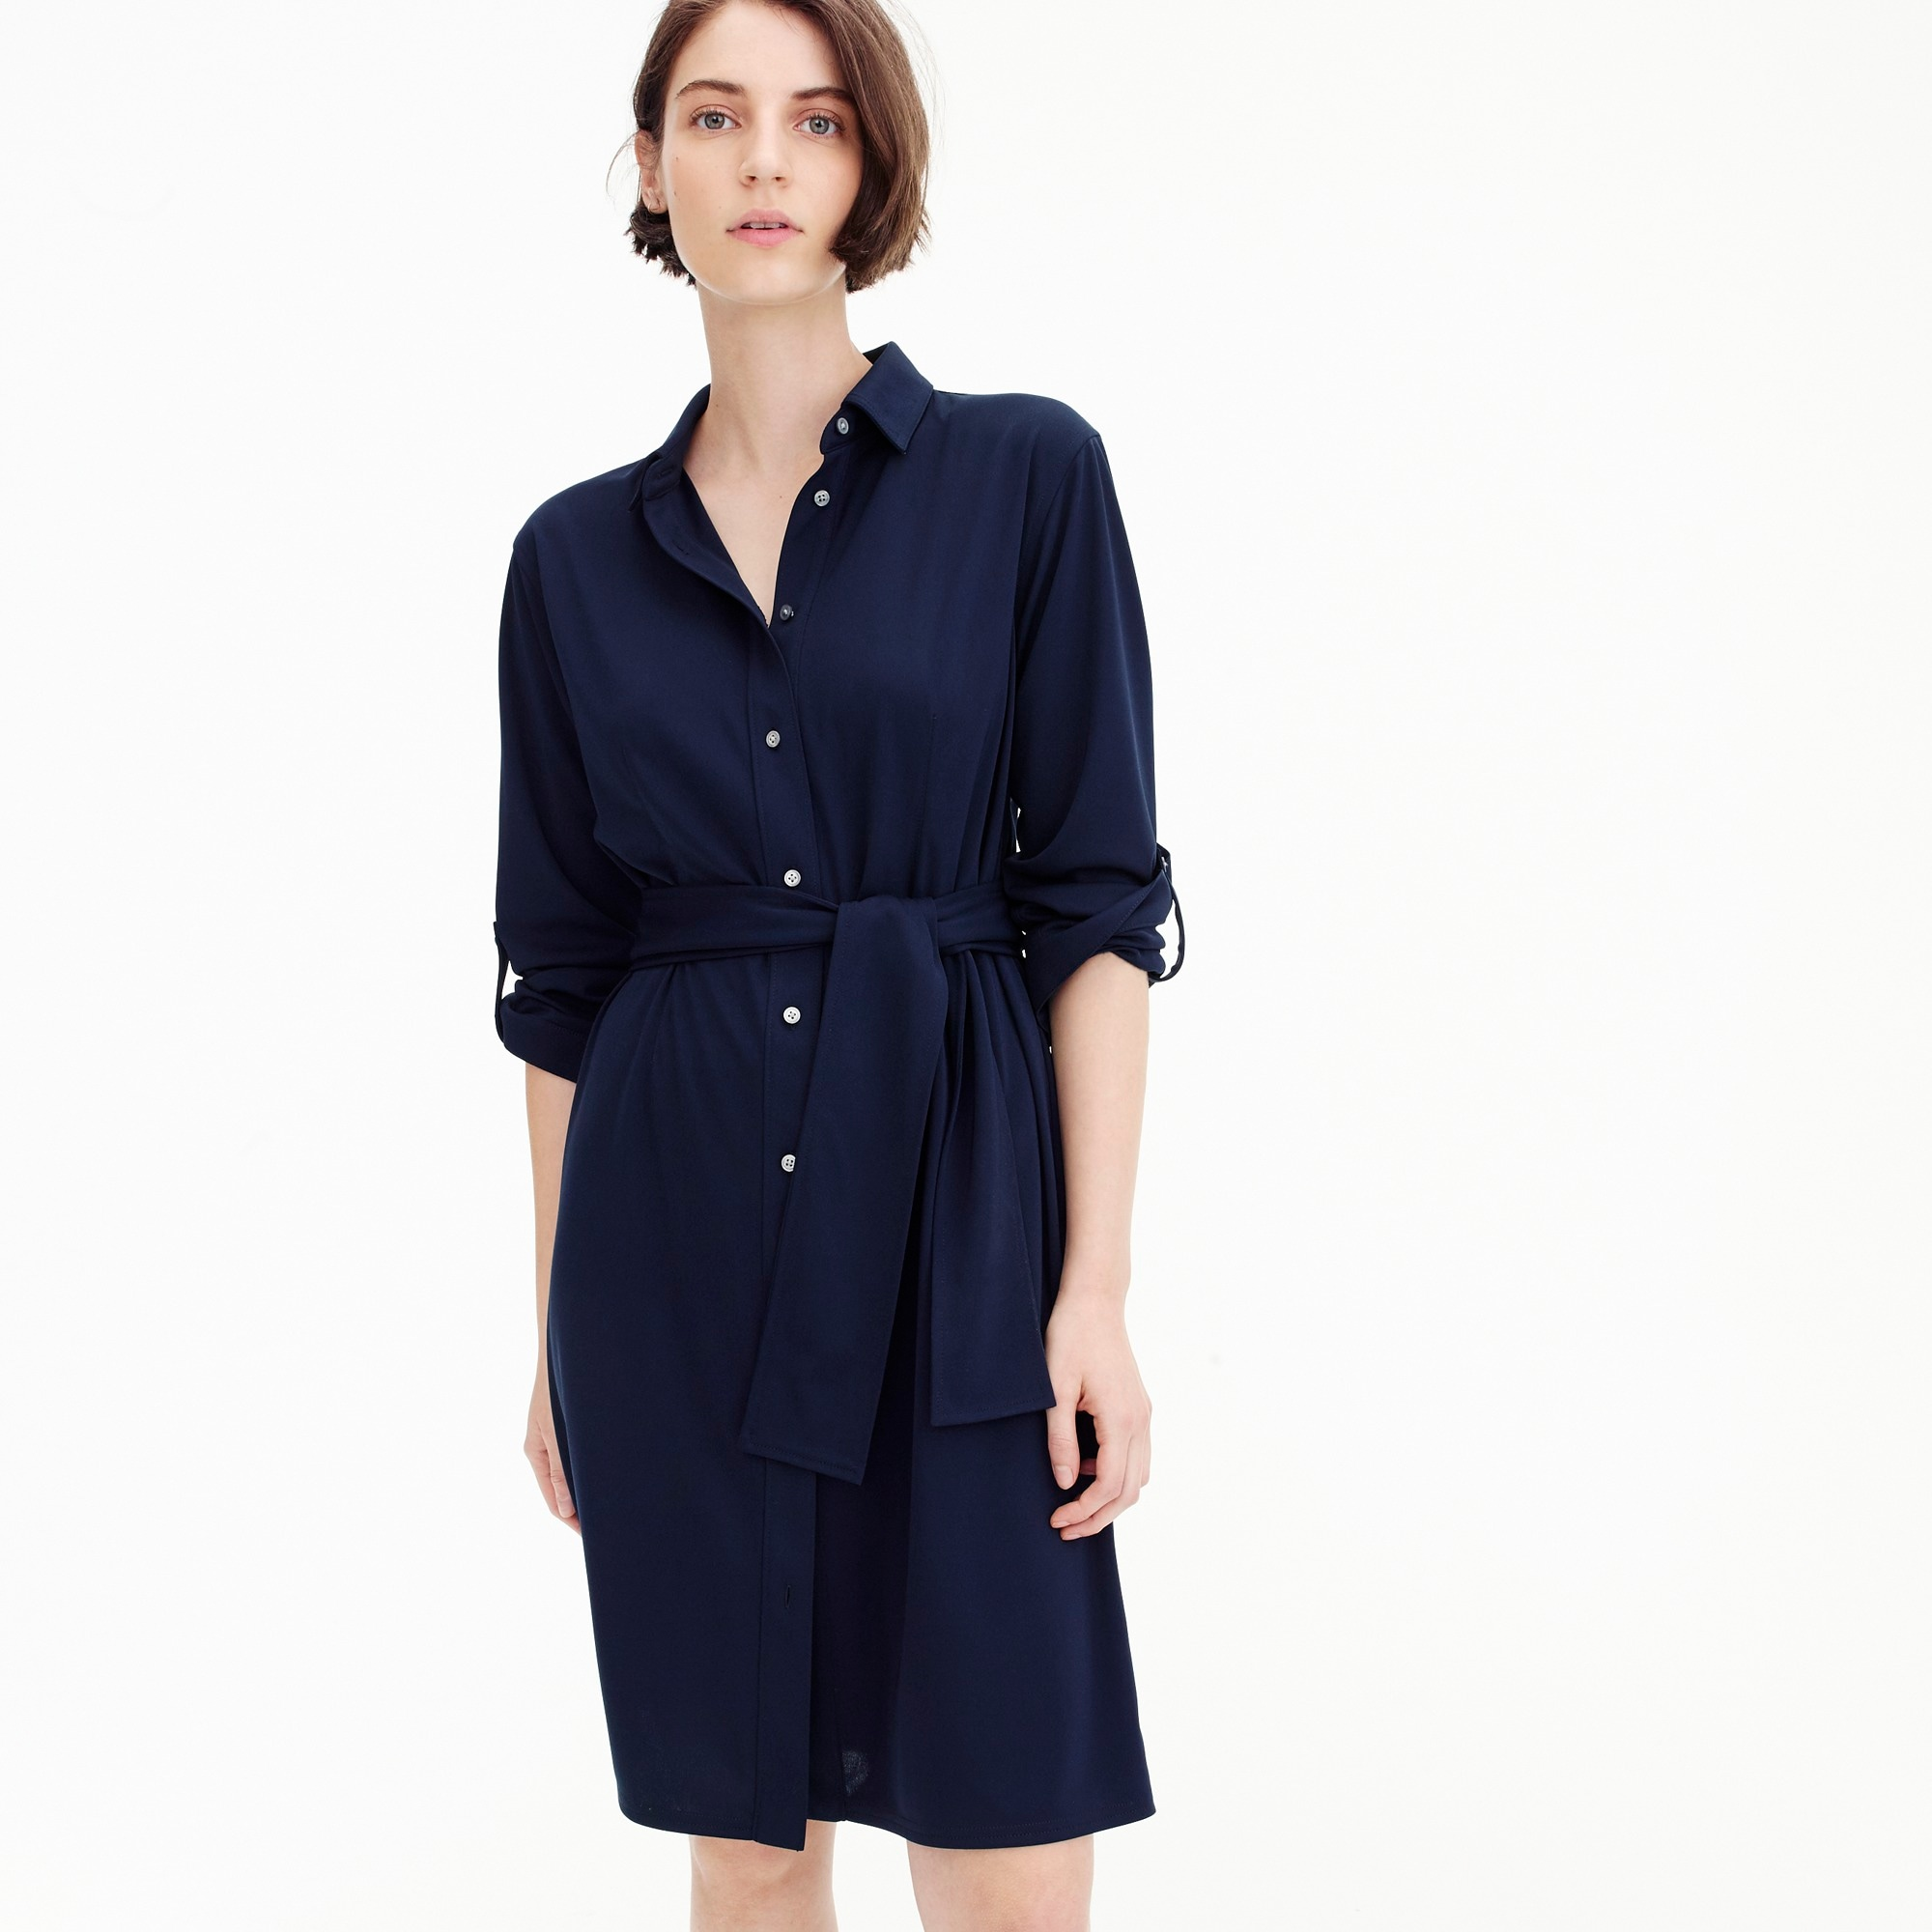 Tie-waist knit shirtdress women new arrivals c